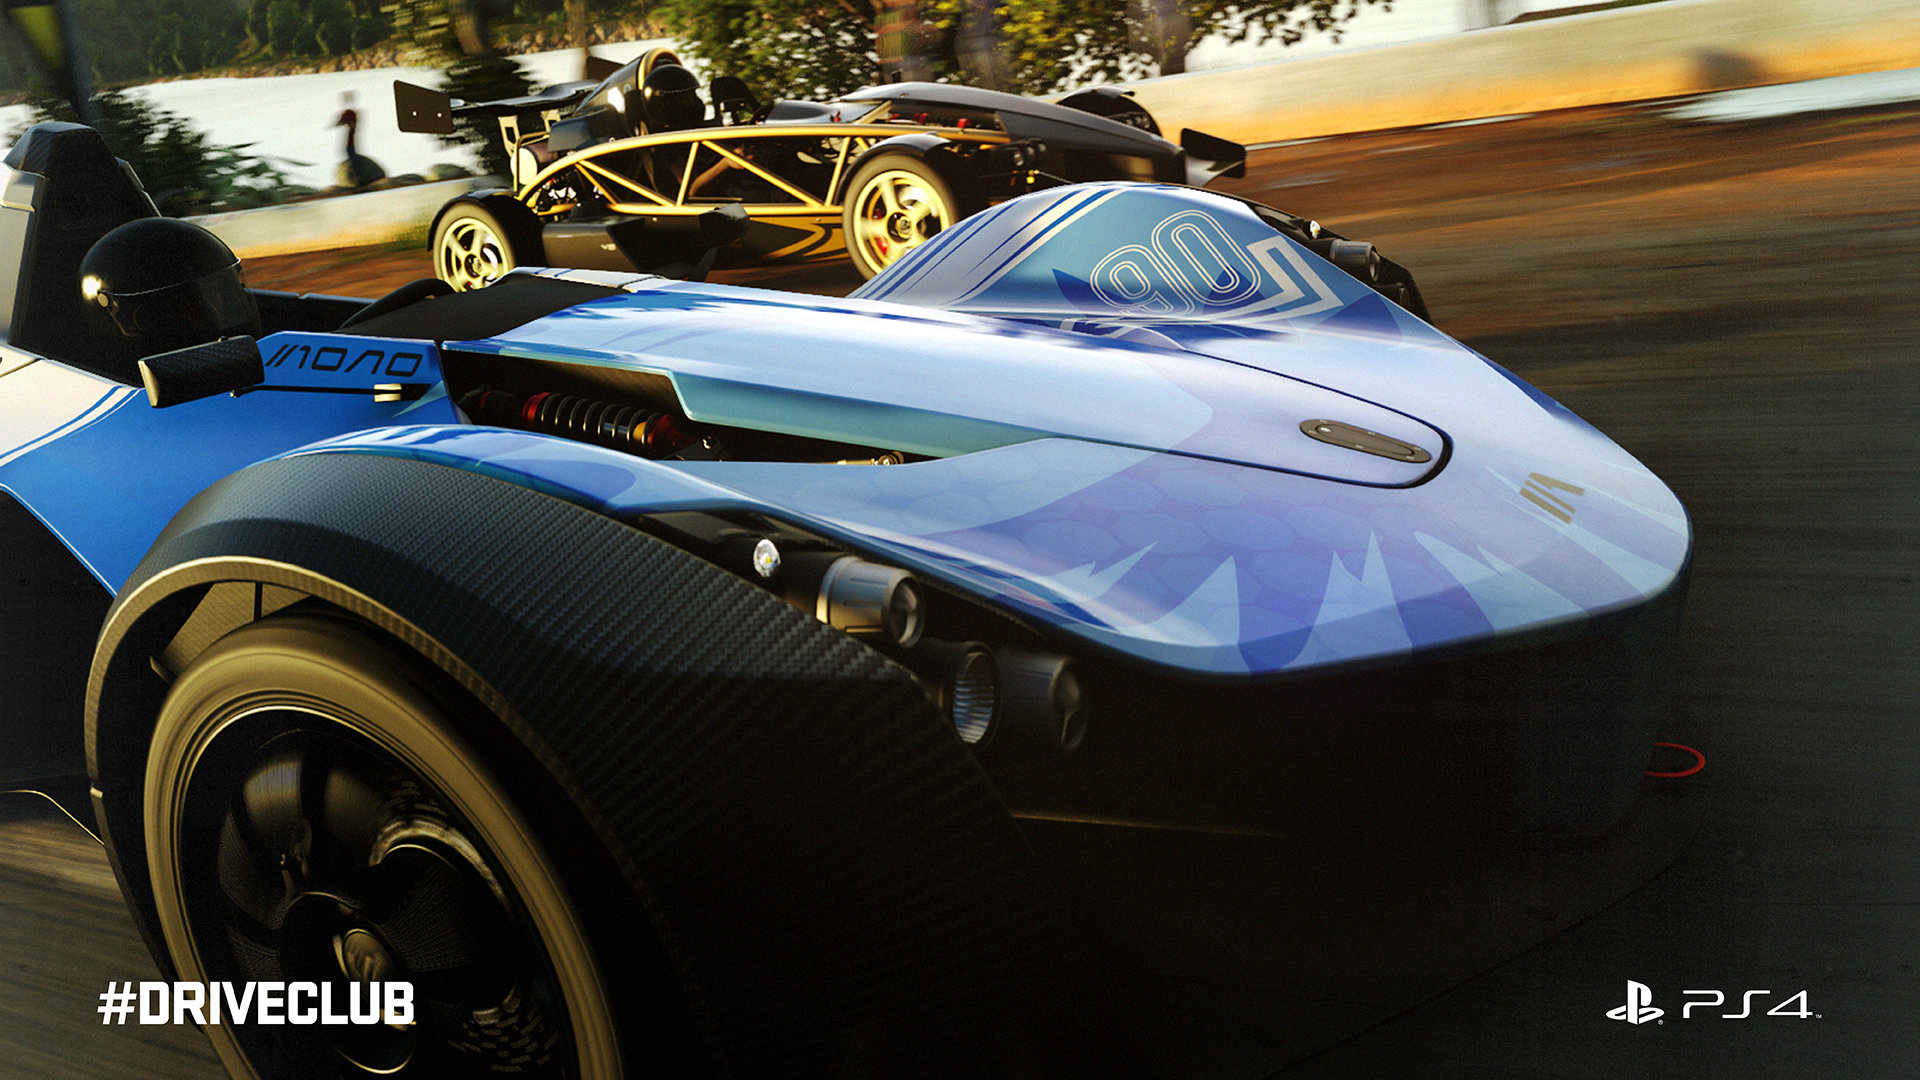 driveclub-screen-15-ps4-us-26aug14?$Medi